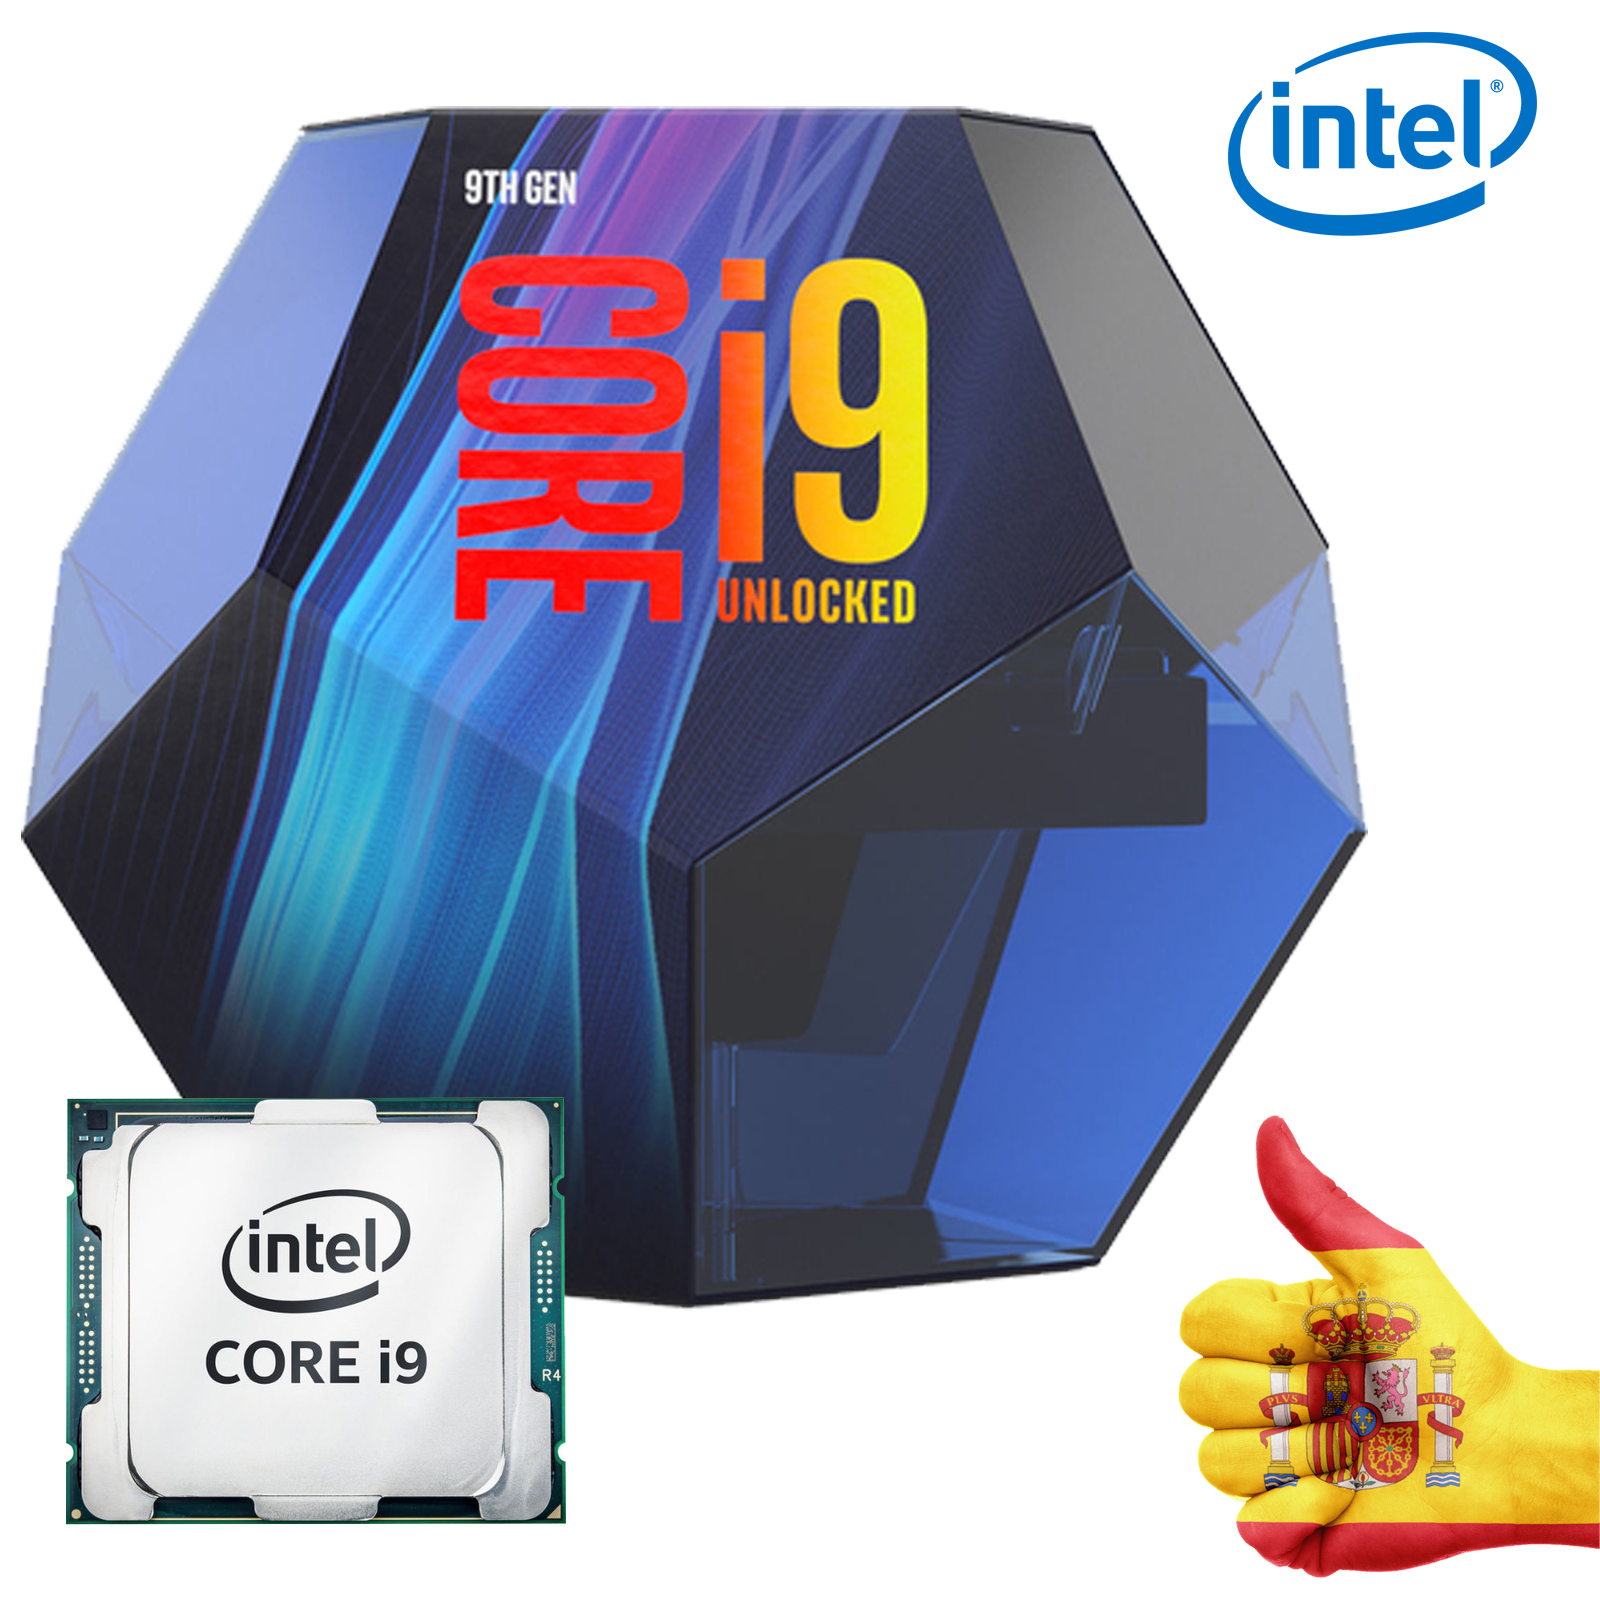 Intel CPU CORE I9-9900K 3.60GHZ 16M LGA1151 BX80684I99900K 999J2X 984503